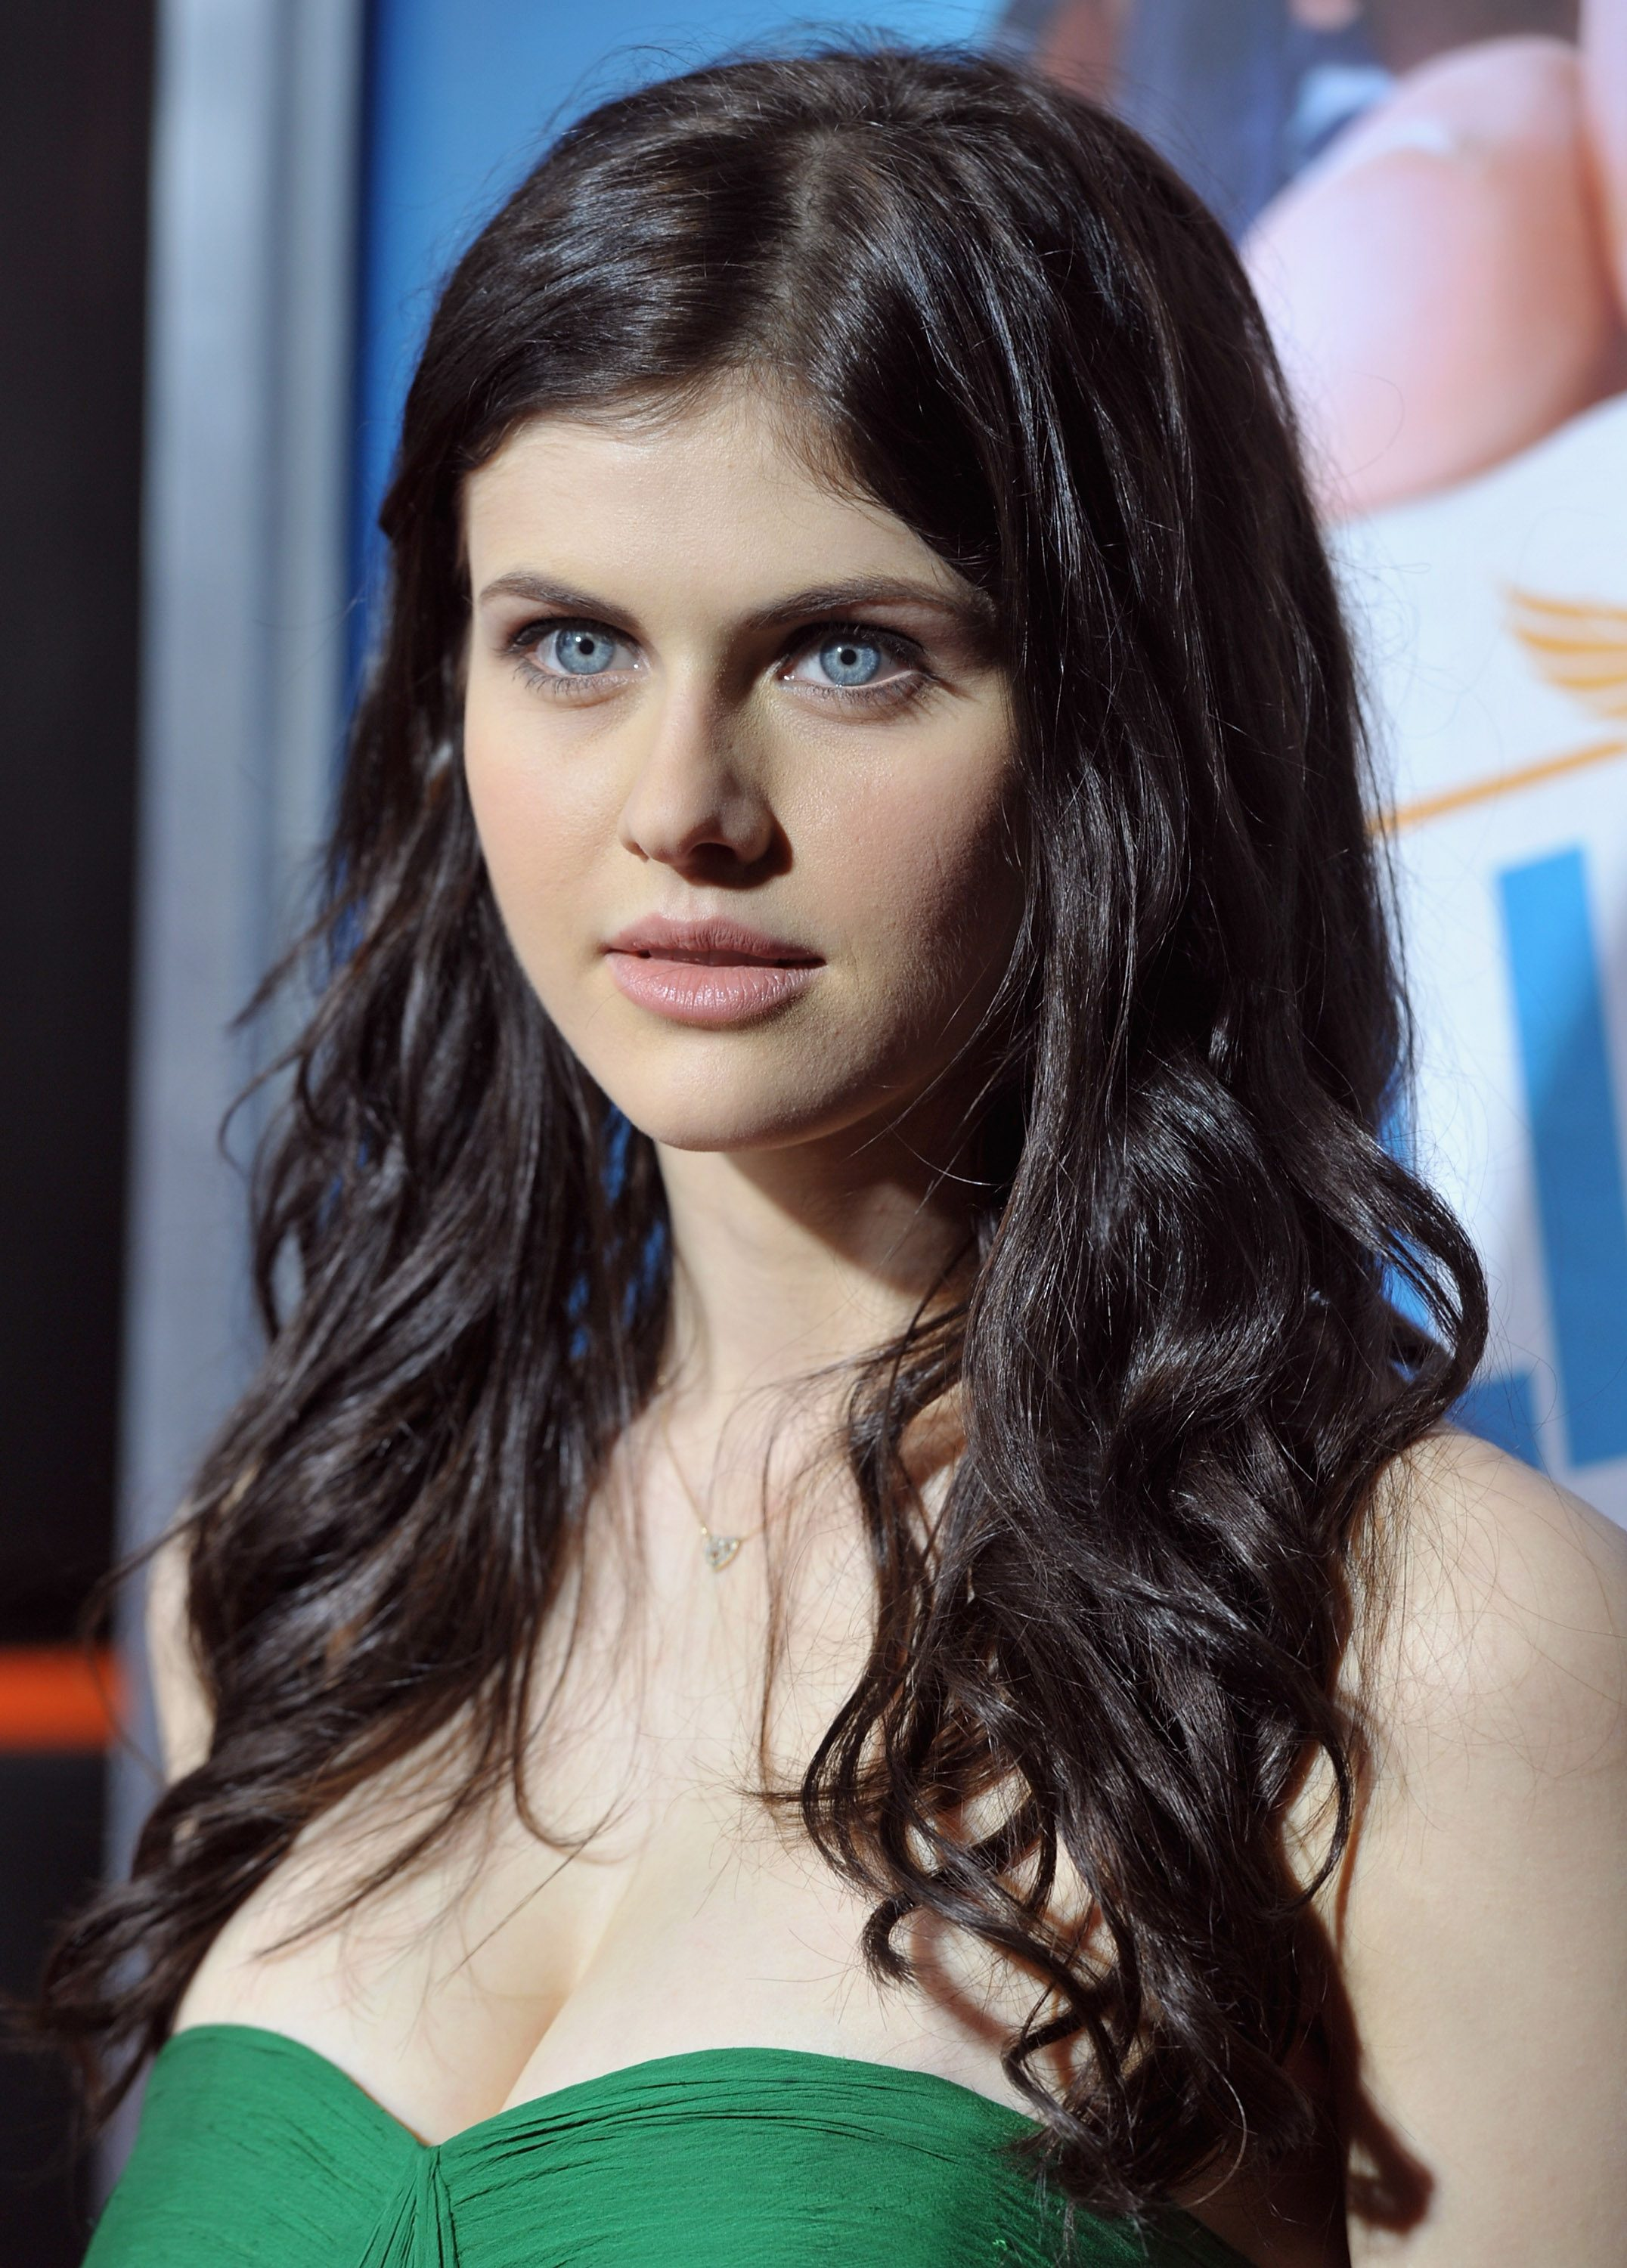 Alexandra Daddario Hot in Green